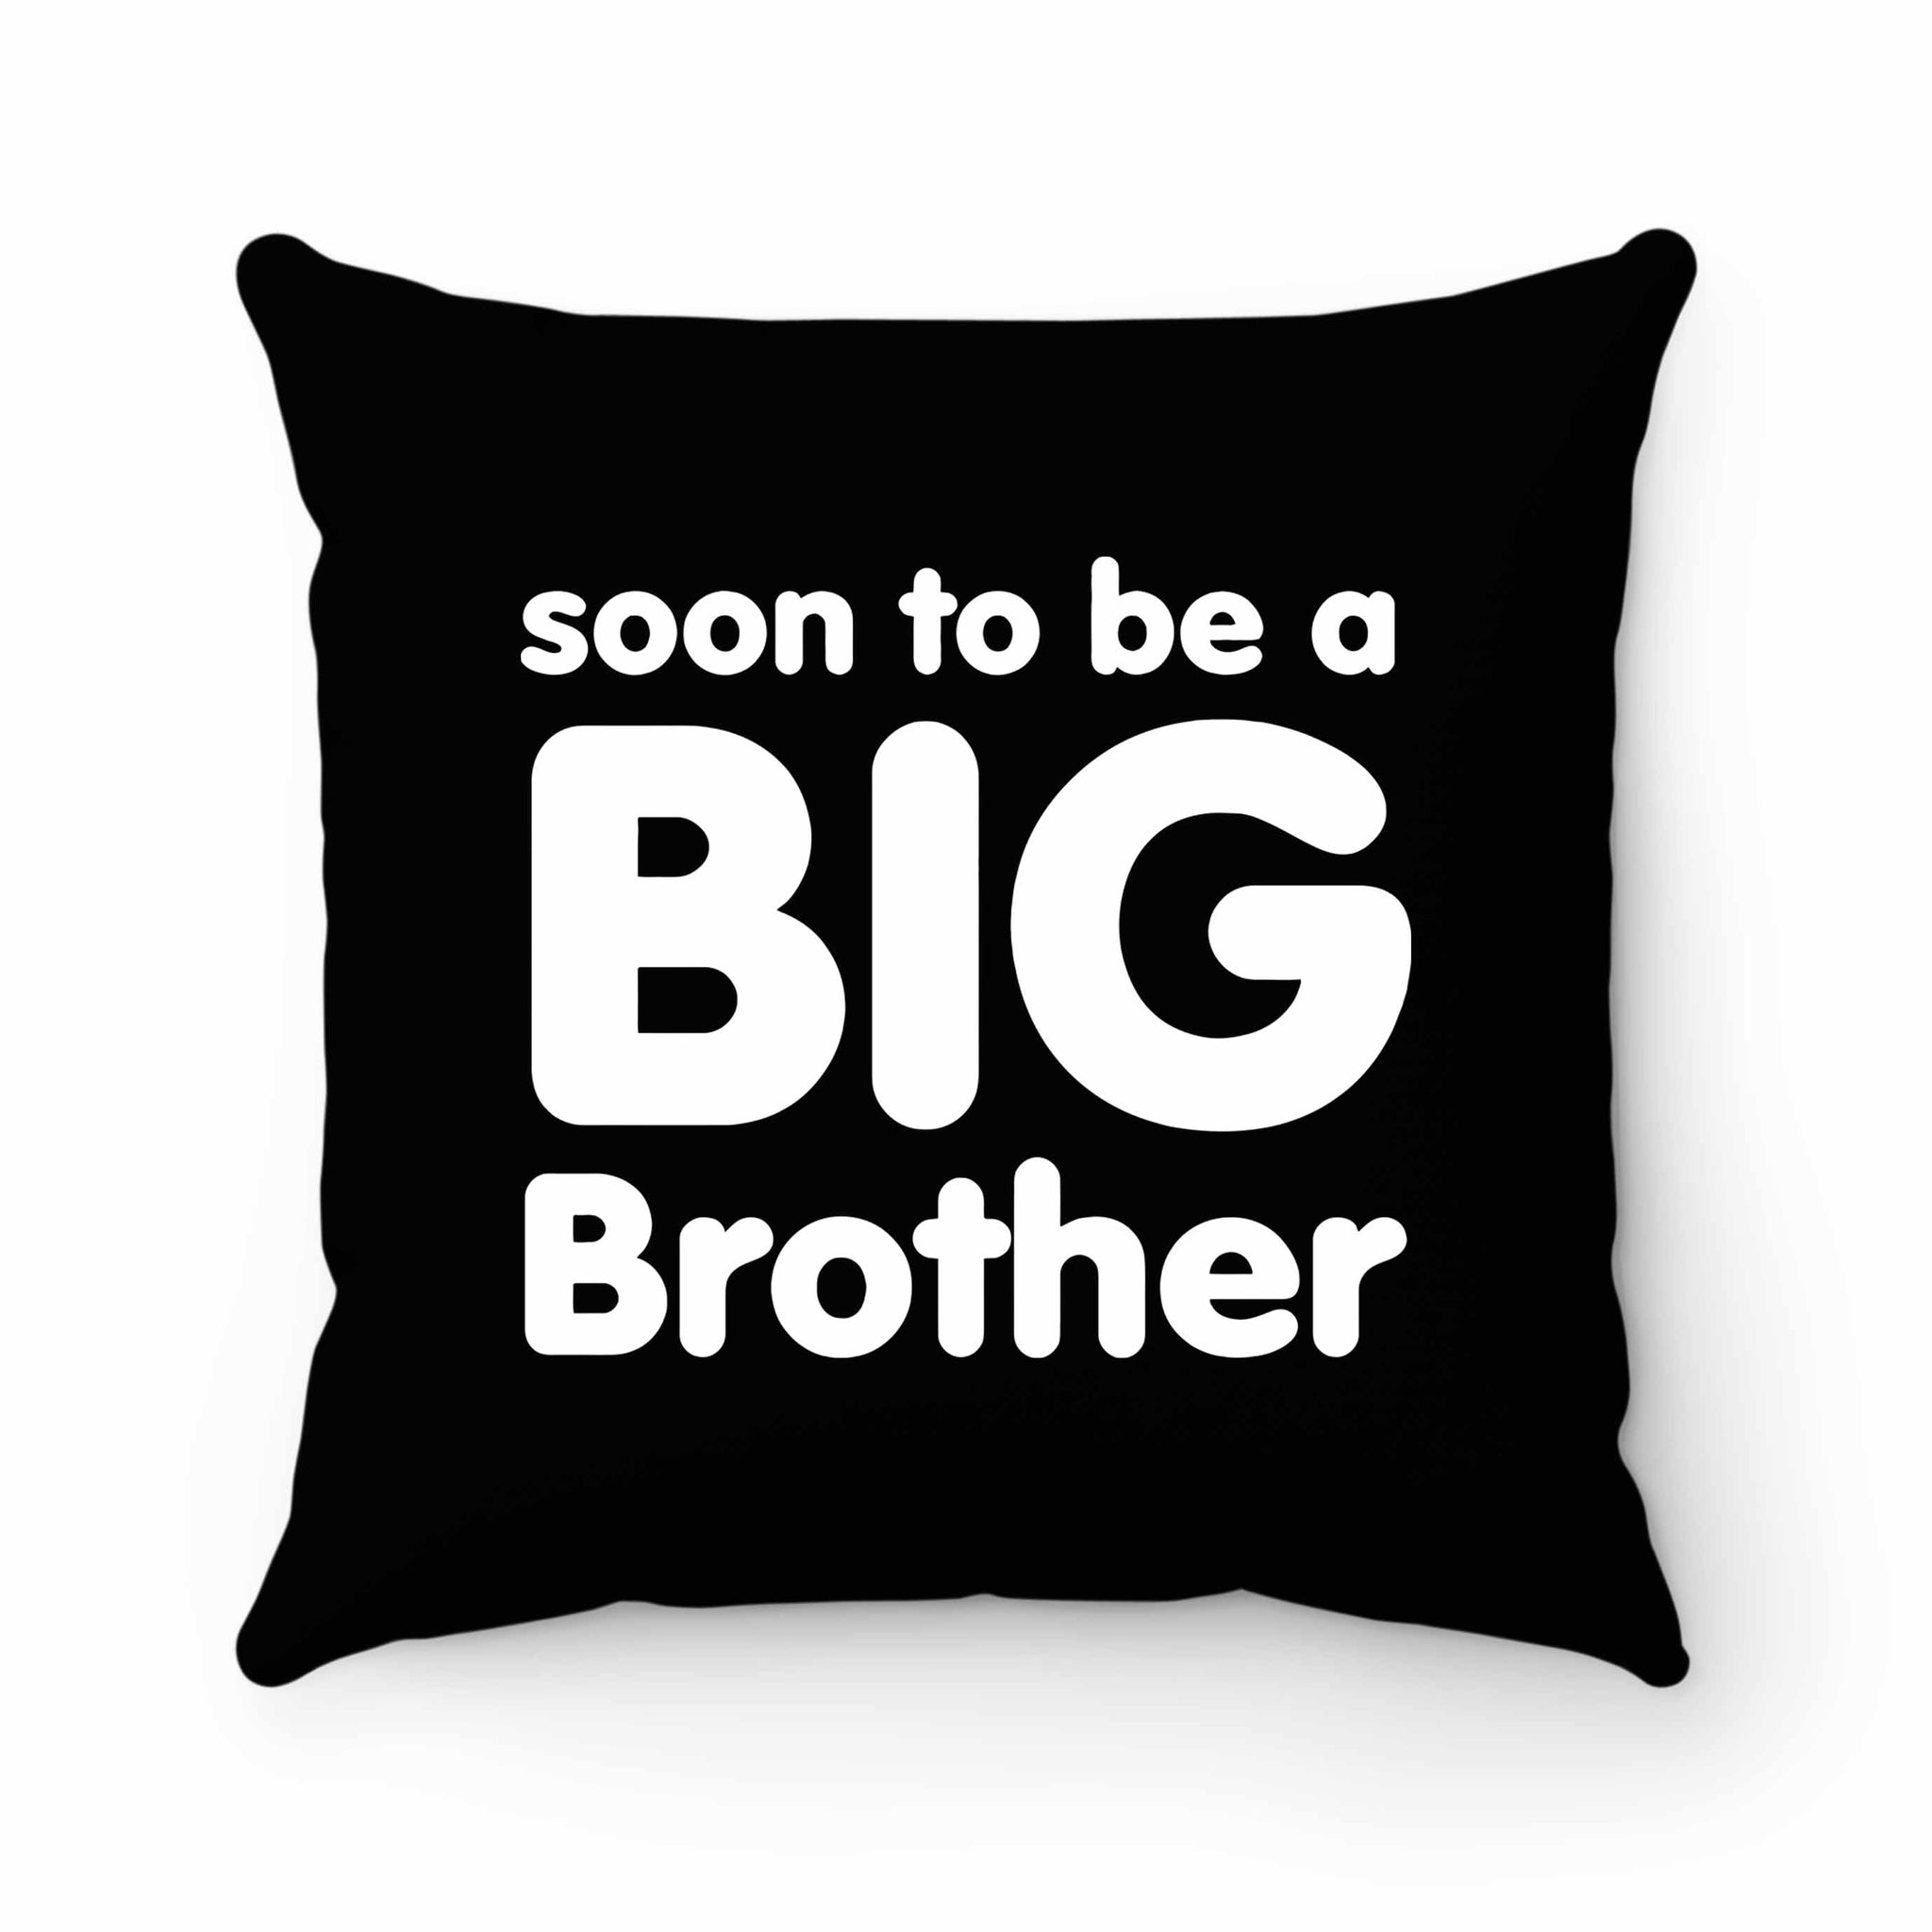 Soon To Be A Big Brother Pillow Case Cover